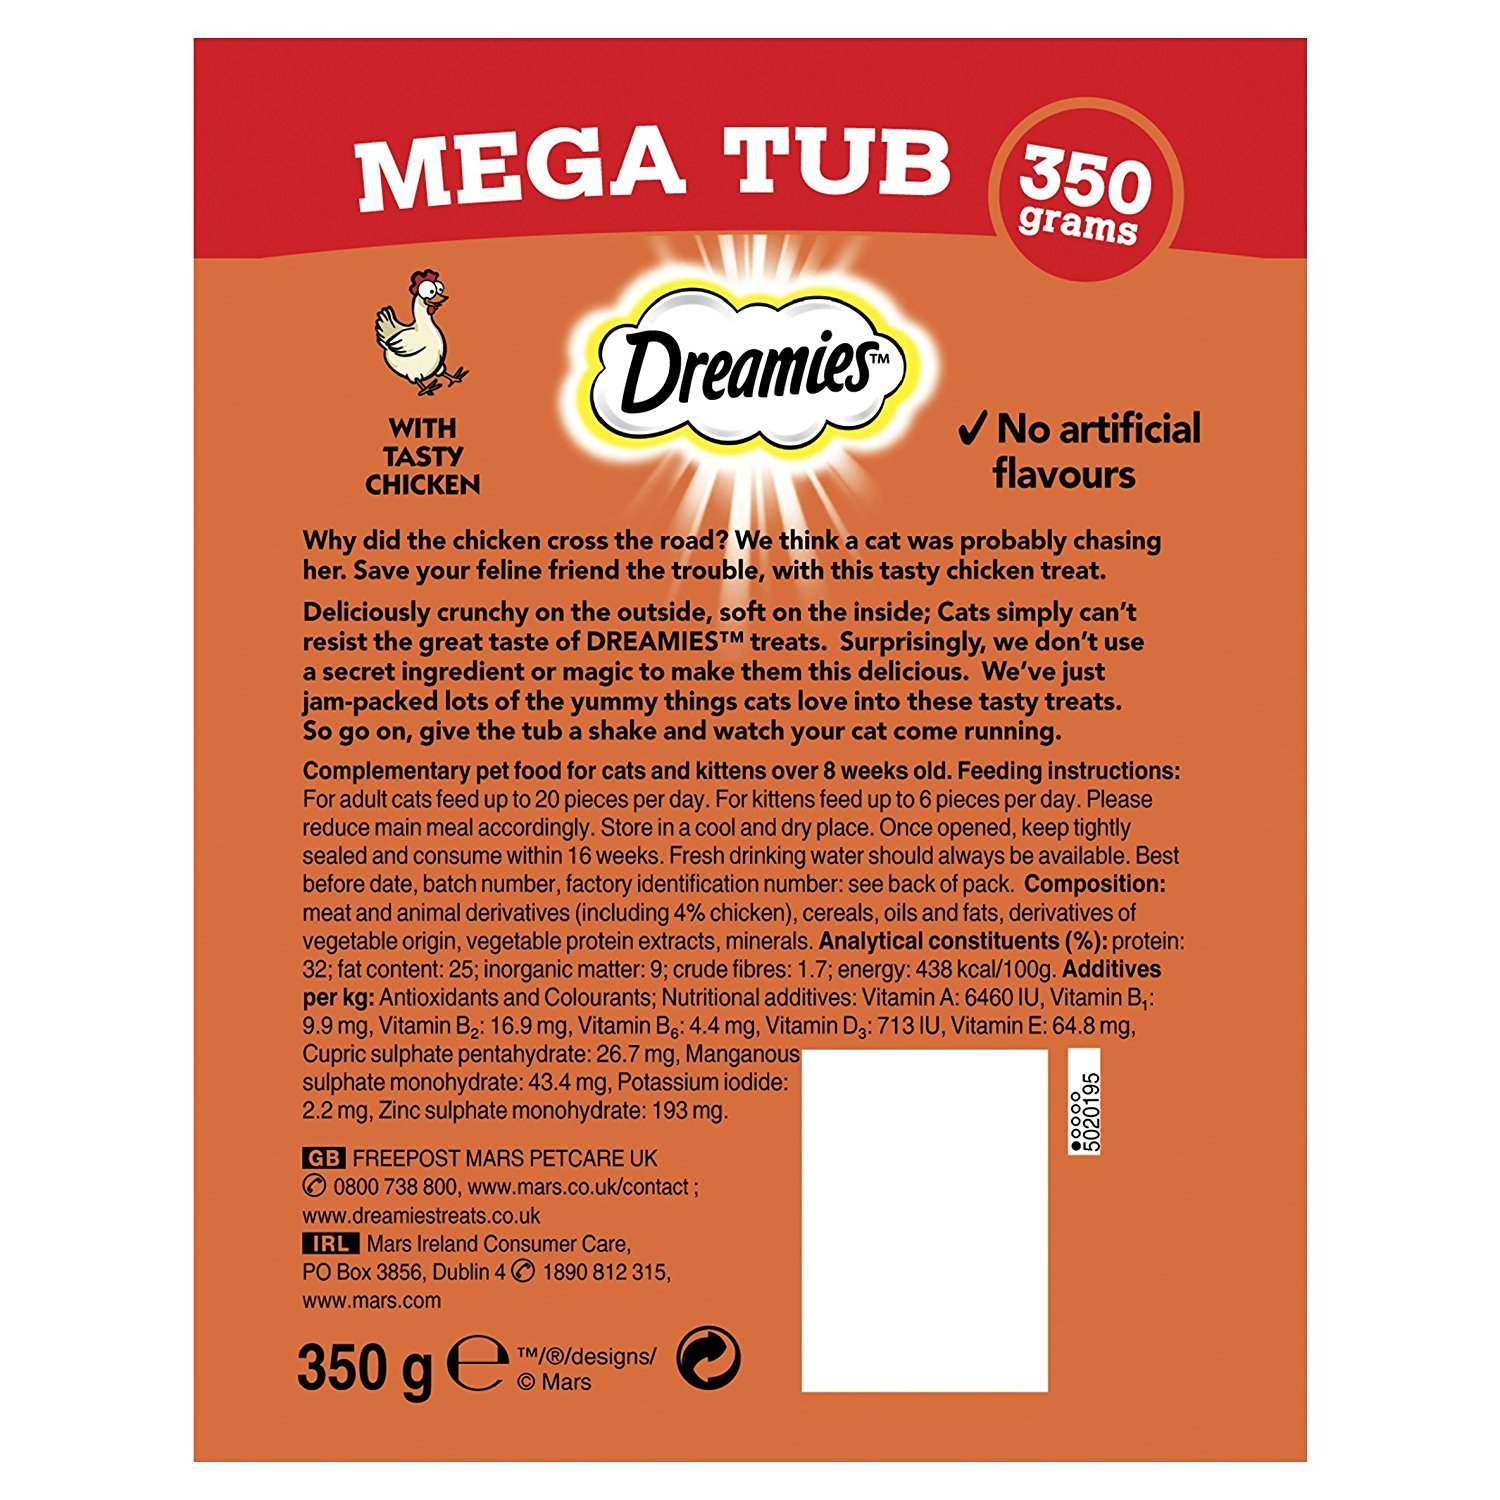 2 Dreamies 350g Mega Tub Cat Treats with 1 Cheese, 1 Chicken, HEALTHSTYLE EMPORIUM